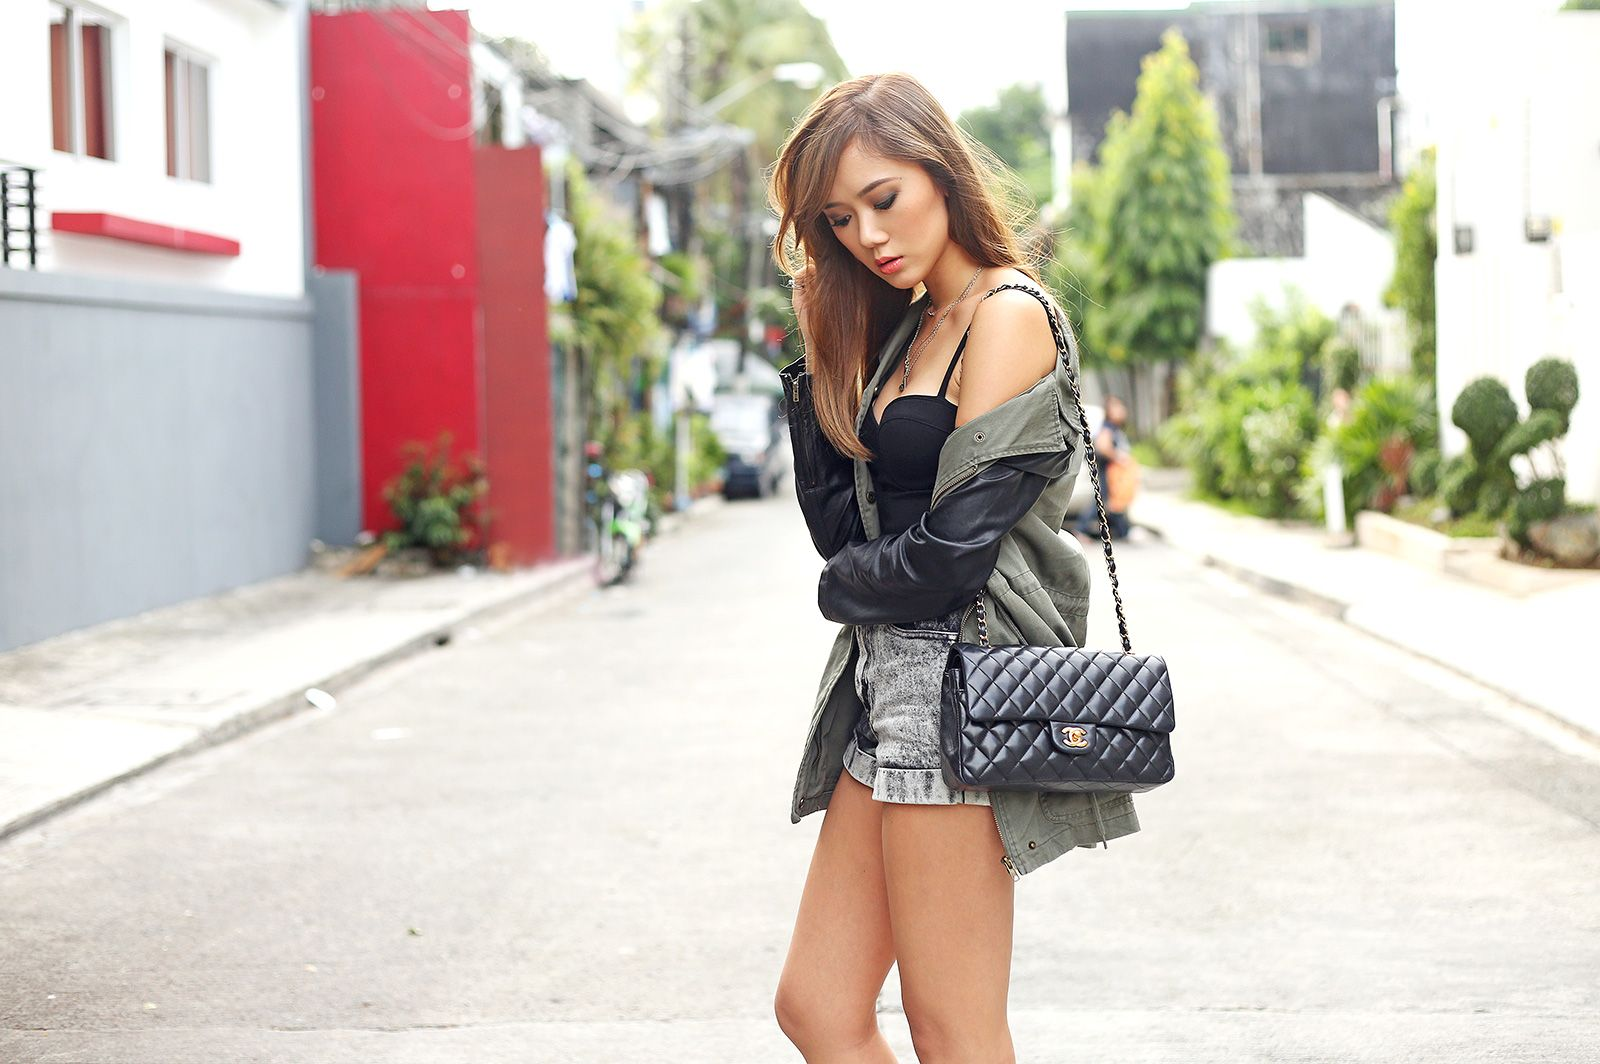 Rugged Style By Fashion Blogger Camille Co